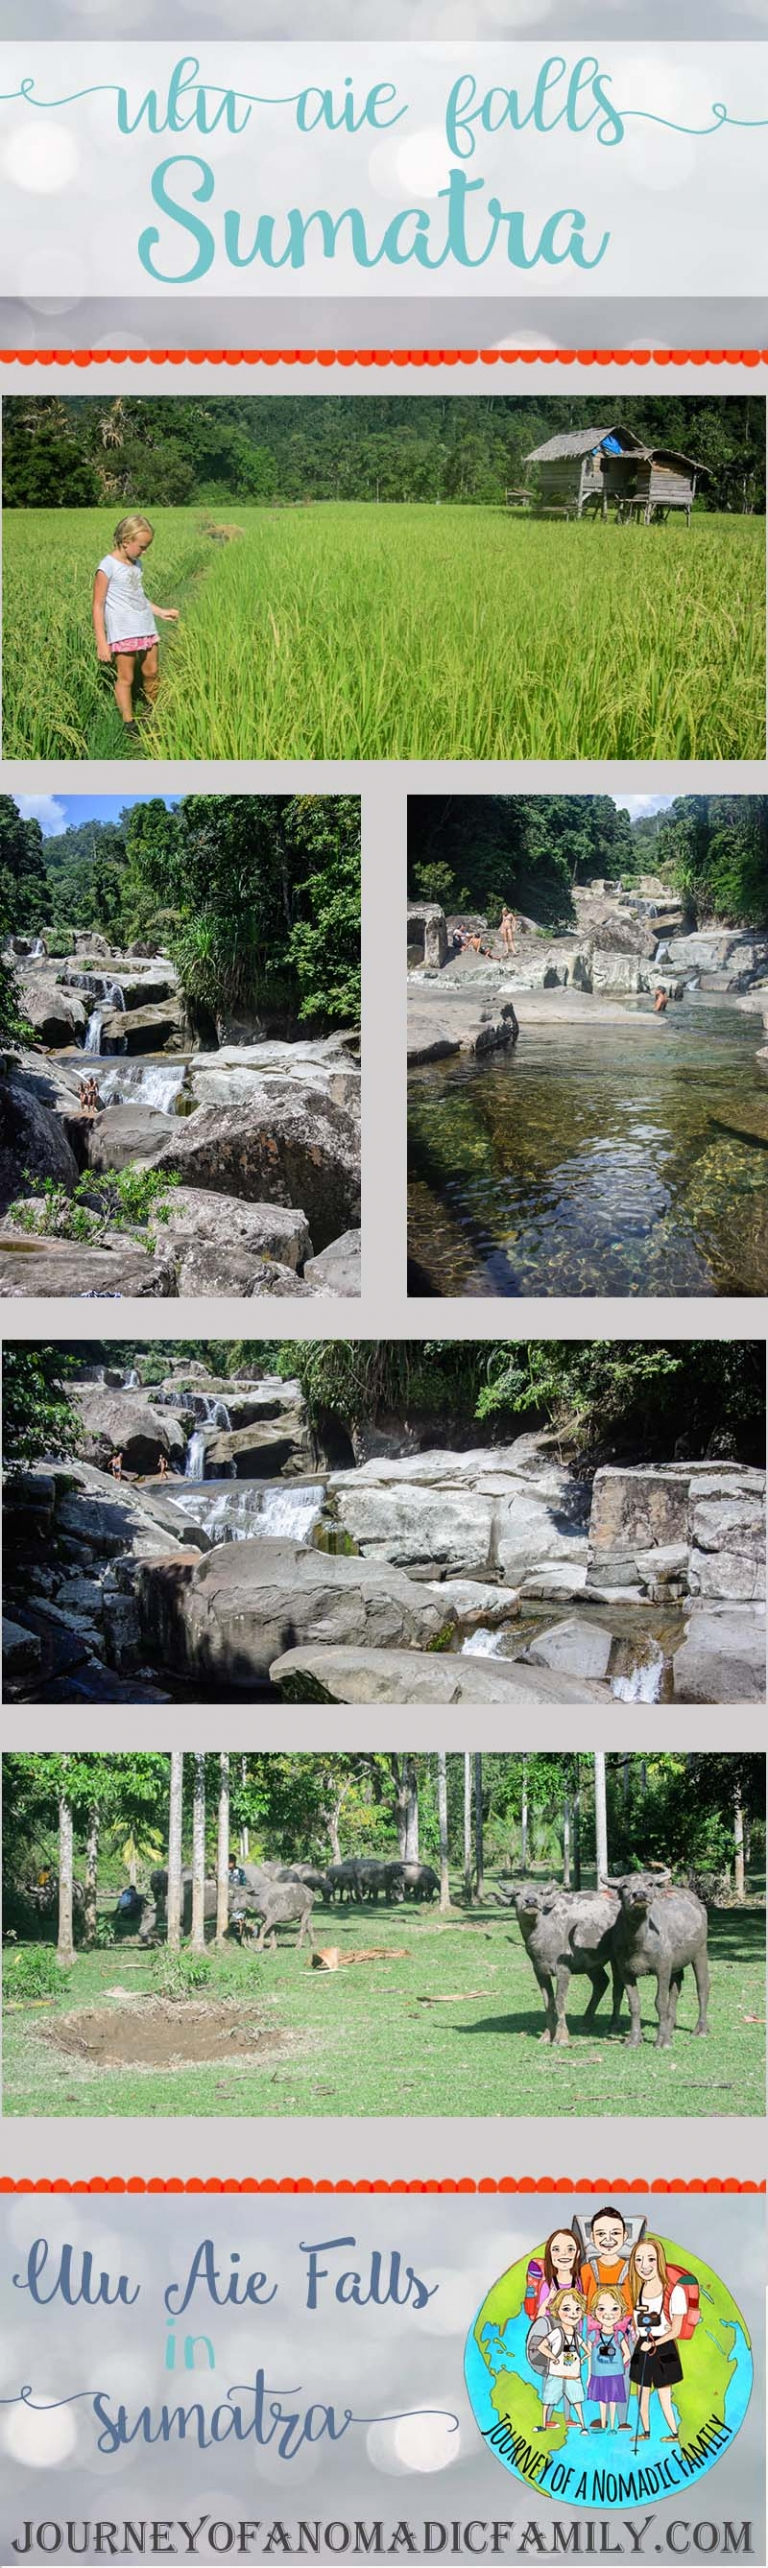 Hiking the waterfalls of Ulu Aie in Sunai Pinang, Sumatra and jumping 10m into the pools below.